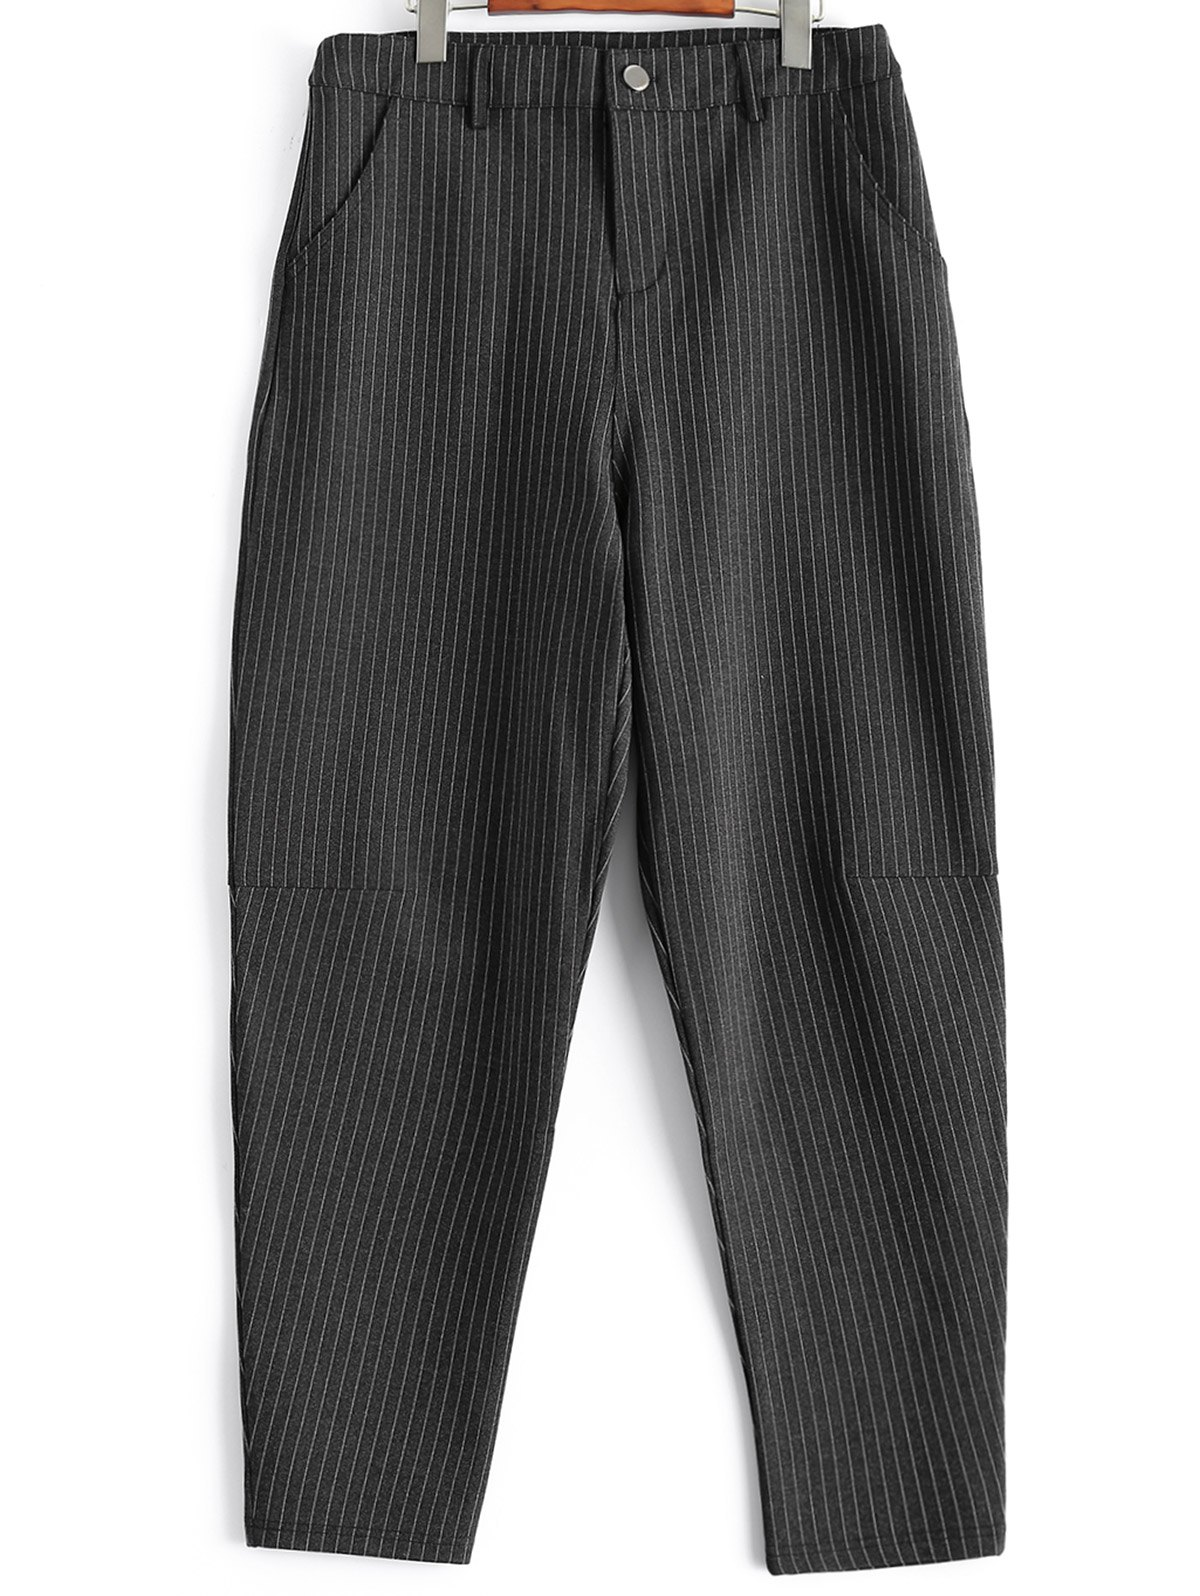 Plus Size Striped Harem Pants - STRIPE XL